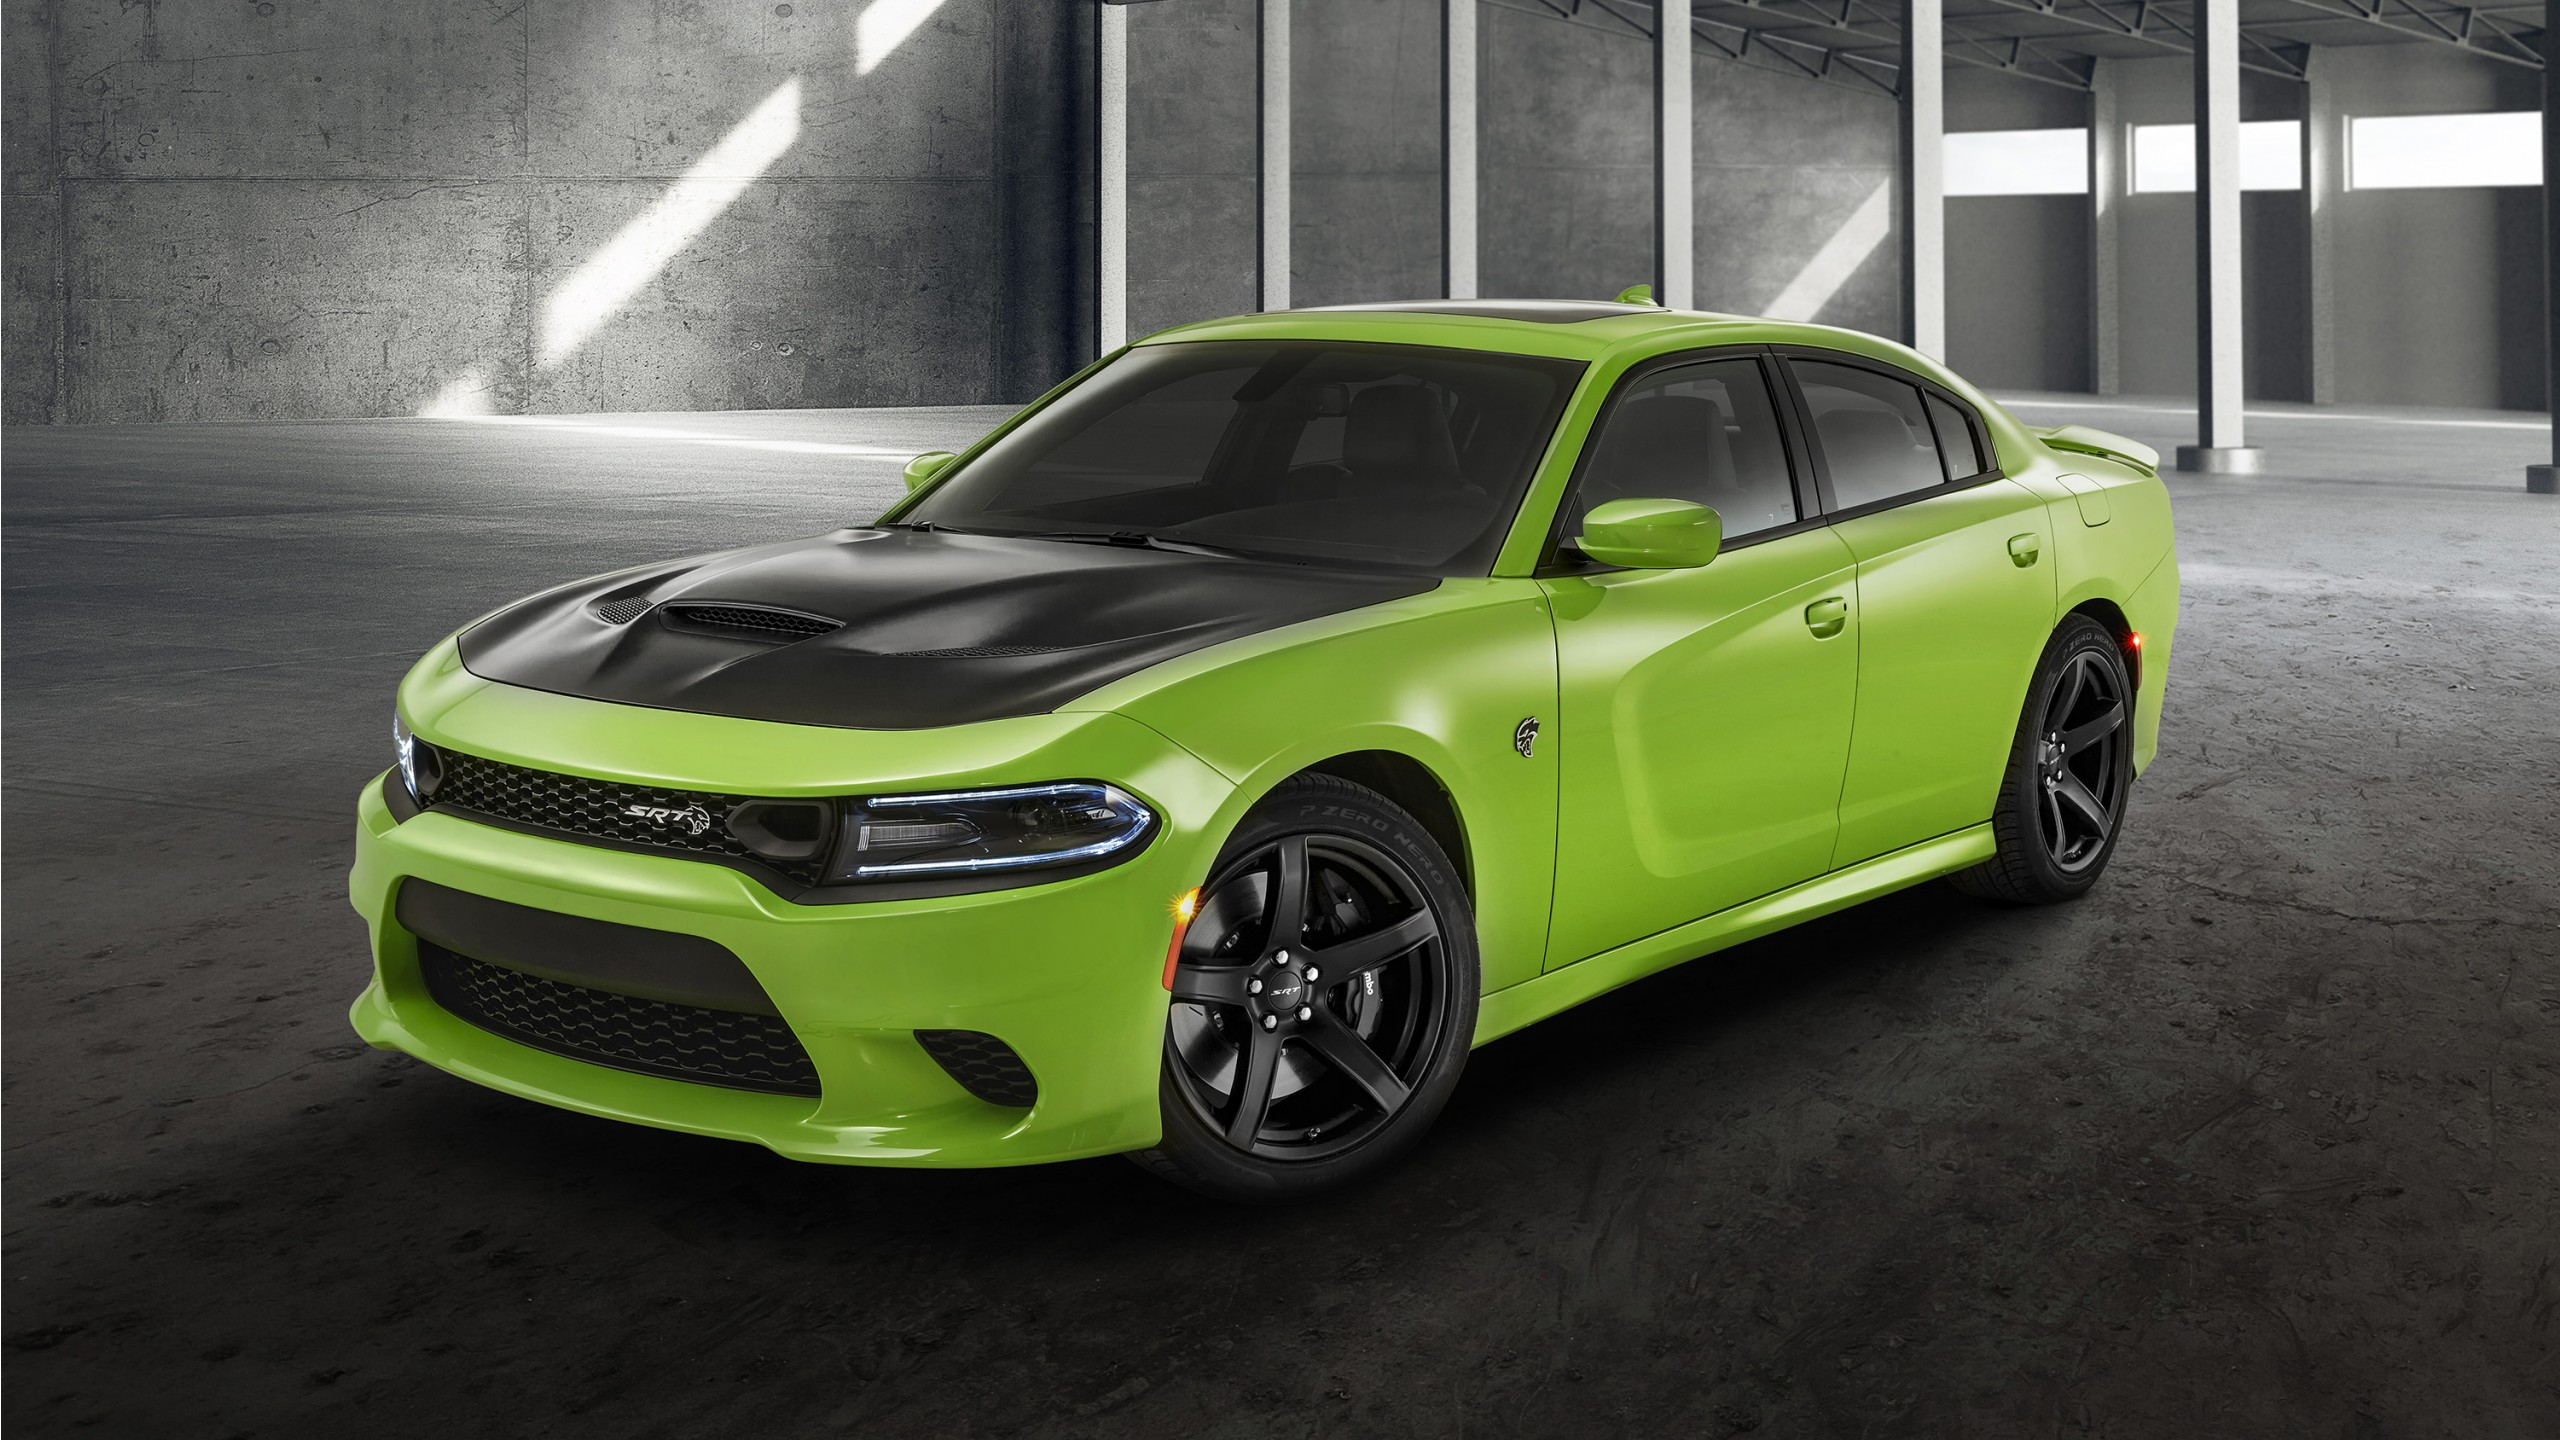 2017 Challenger Hellcat >> 2019 Dodge Charger SRT Hellcat Wallpaper | HD Car Wallpapers | ID #12004